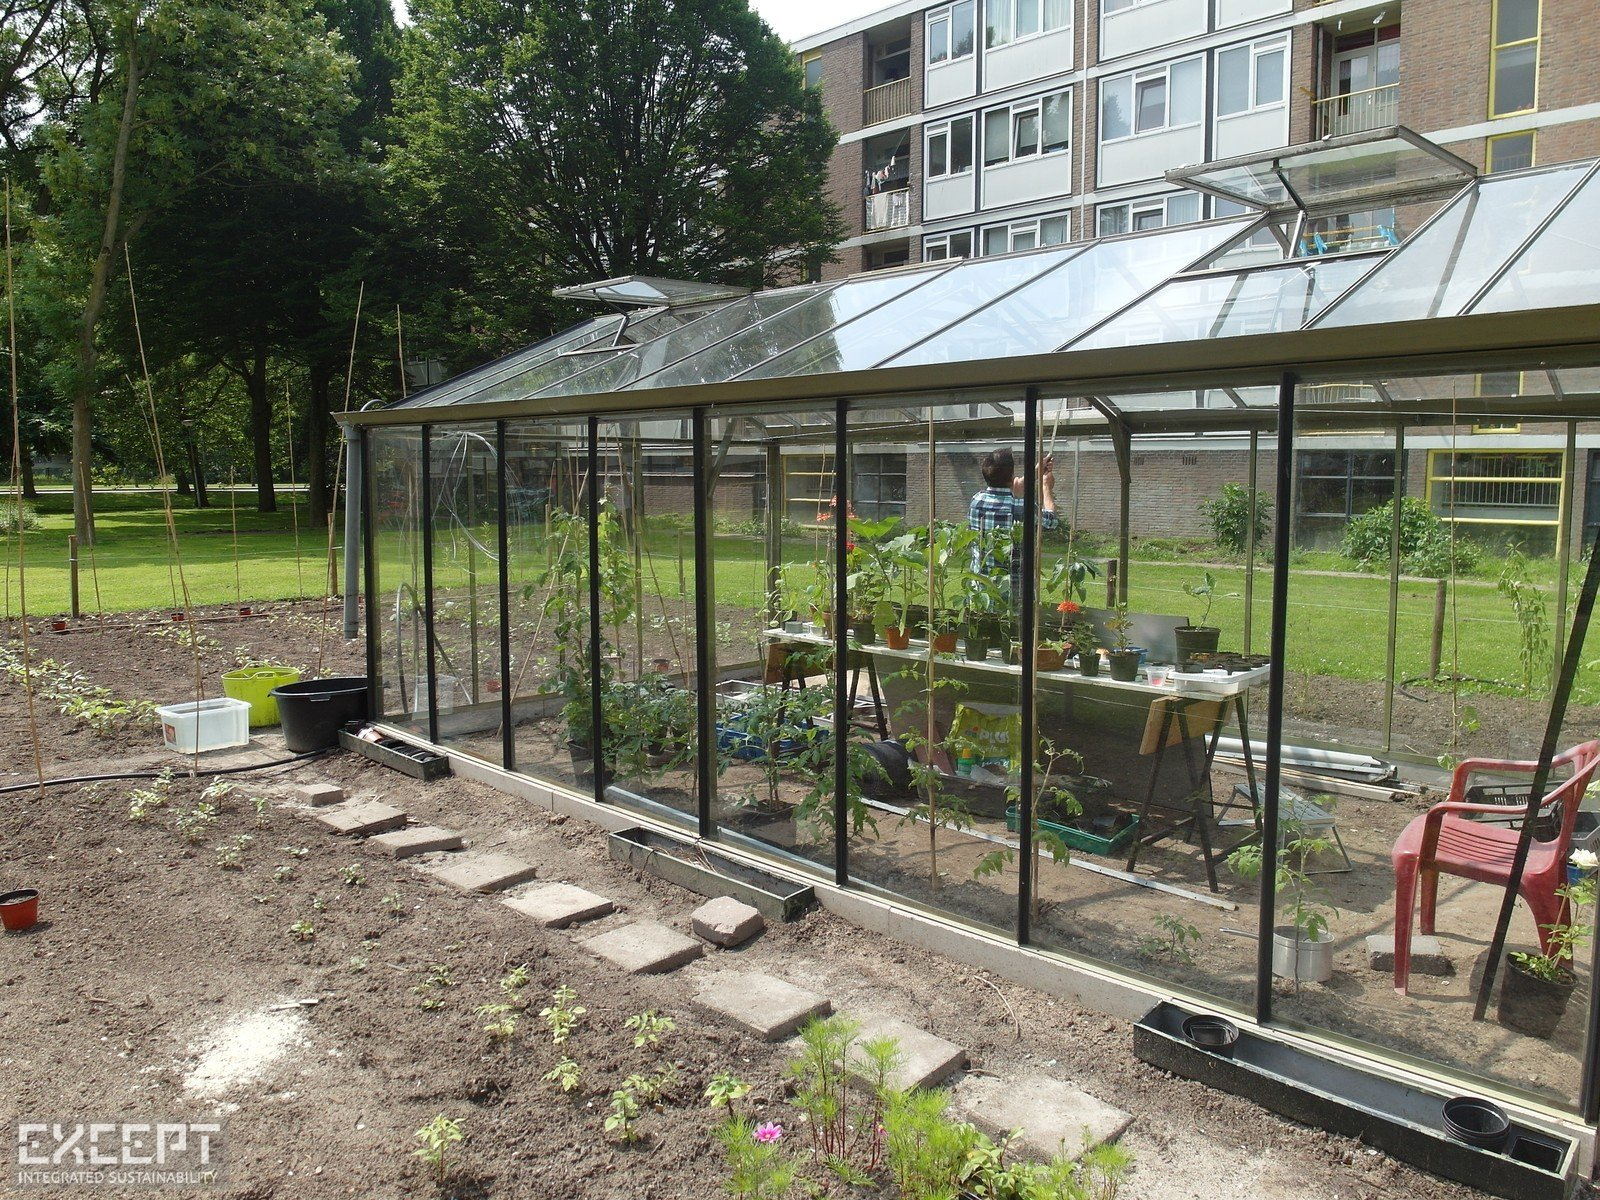 An urban greenhouse in Schiebroek-Zuid - In this Urban Greenhouse baby plants are incubated to spread around the neighborhood.